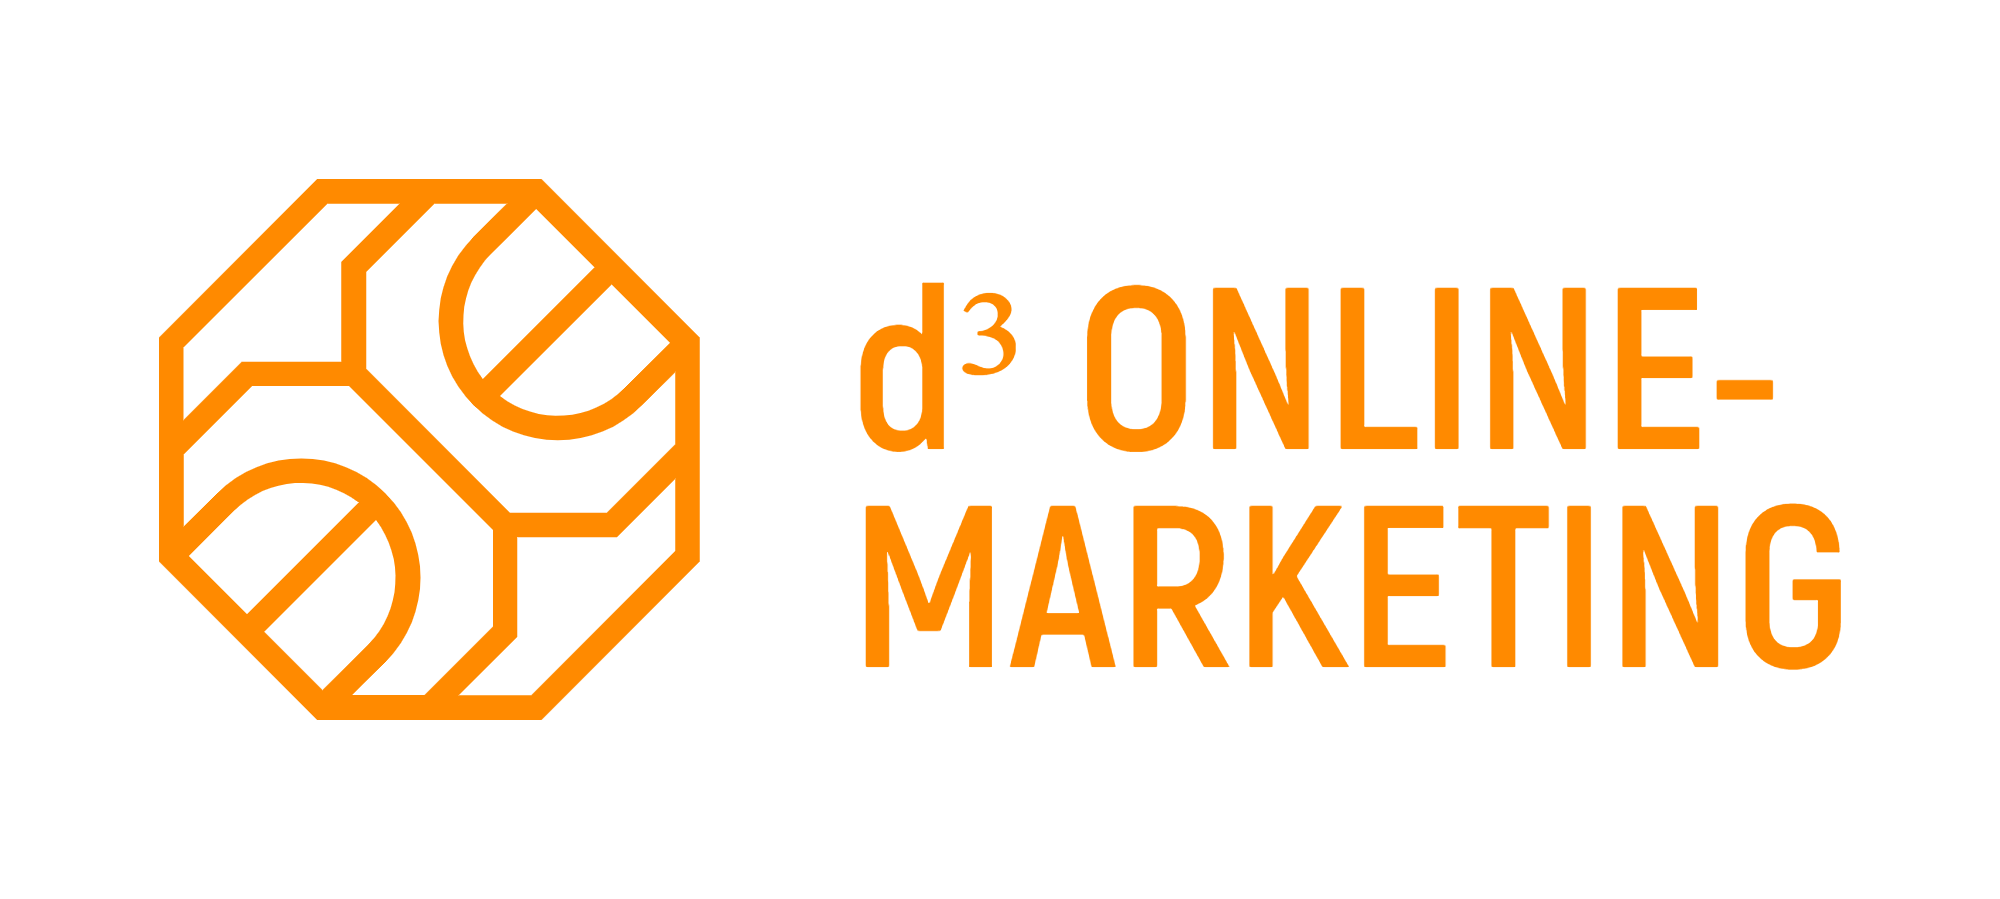 d3-onlinemarketing.de Logo